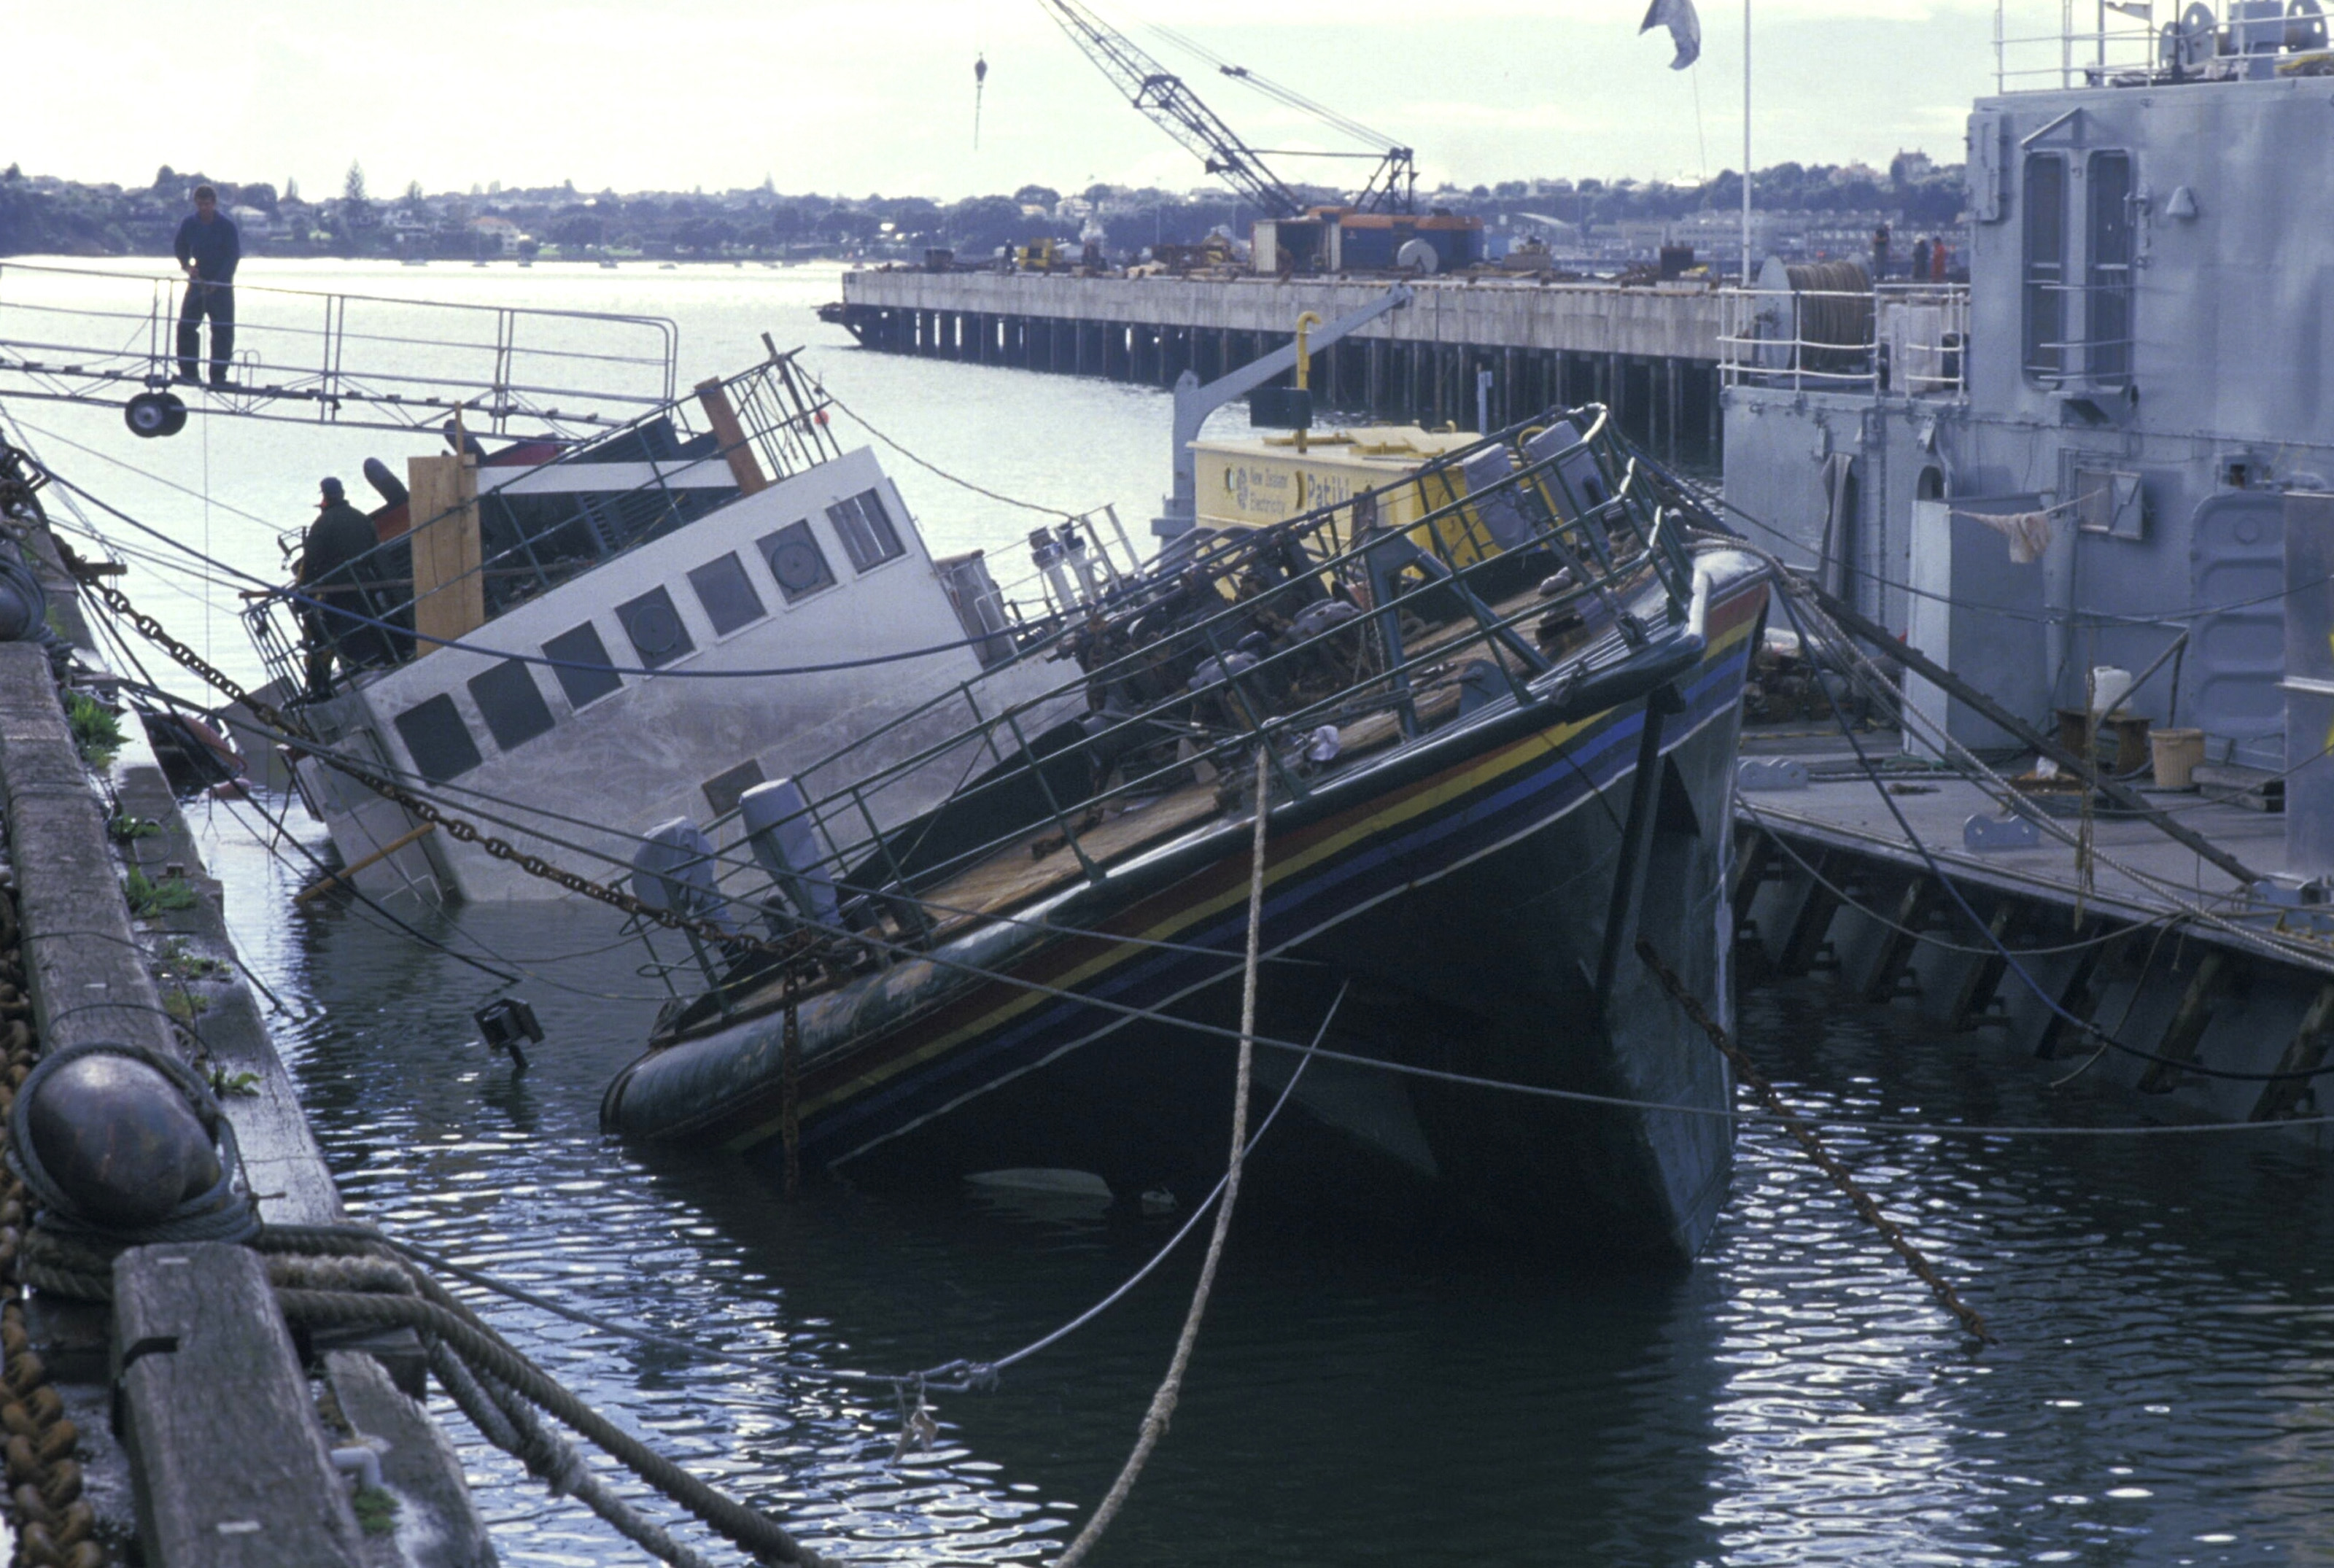 Greenpeace Rainbow Warrior sinking in the Bay of Auckland in New Zealand, 1985.